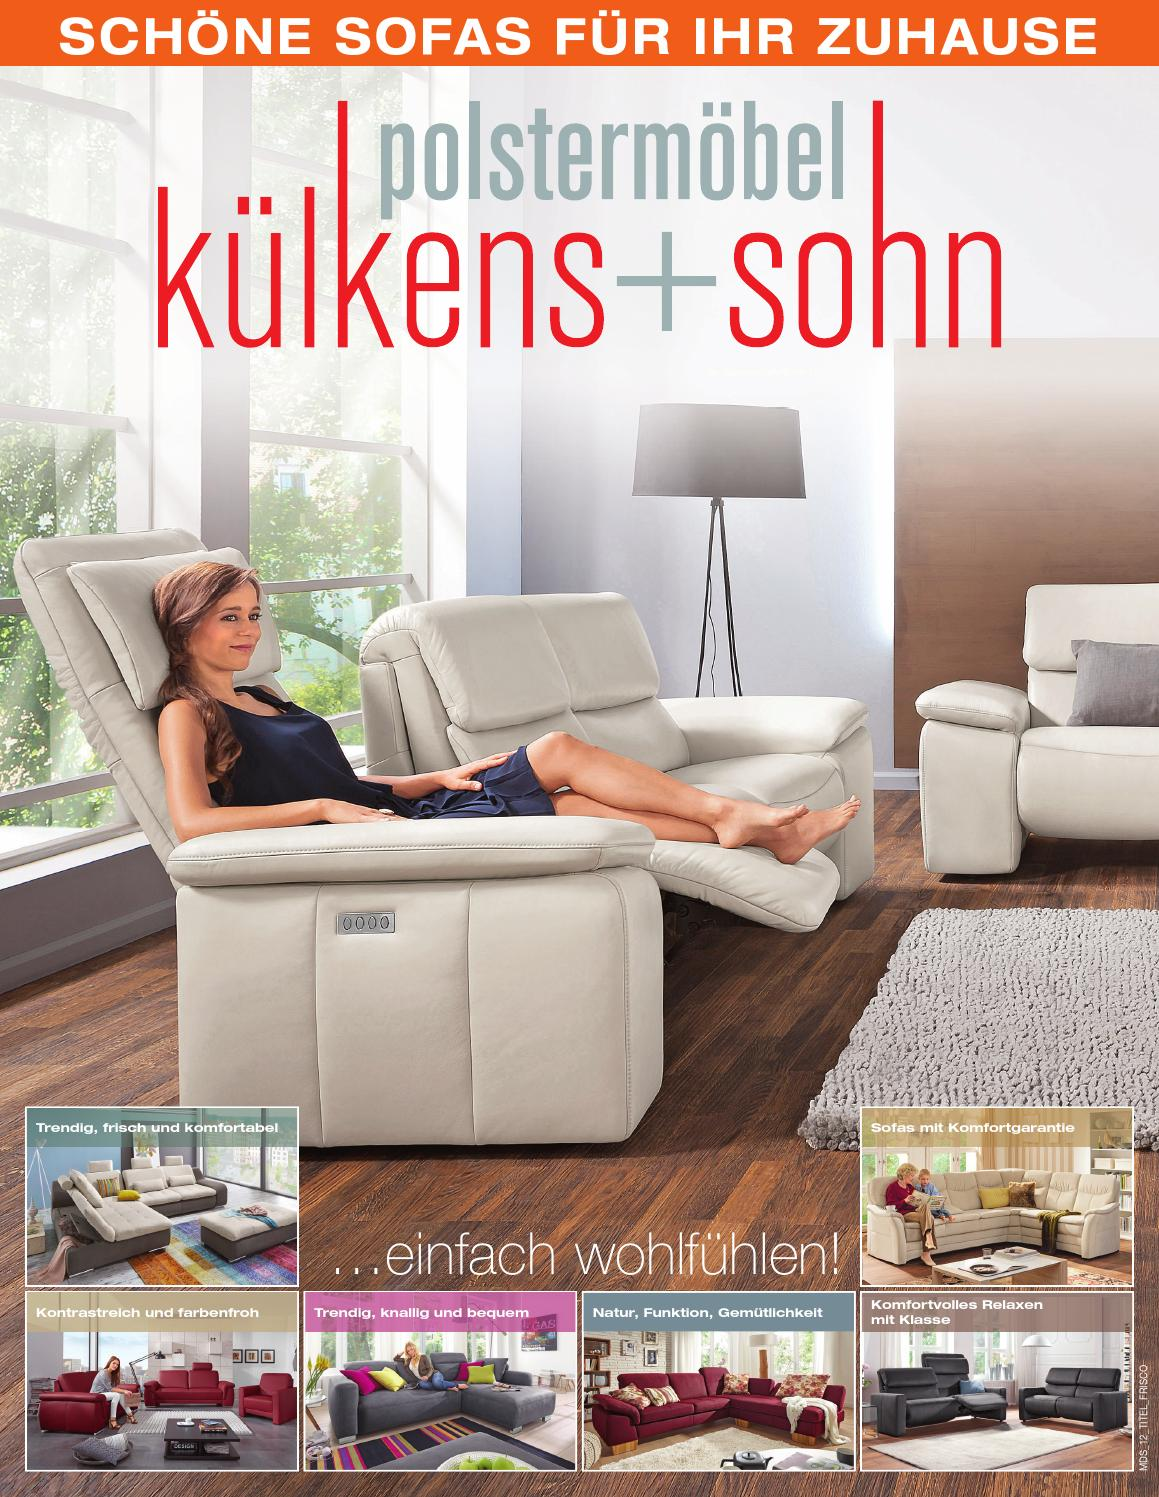 kuelkens kaufda prospekt 1014 by perspektive werbeagentur issuu. Black Bedroom Furniture Sets. Home Design Ideas